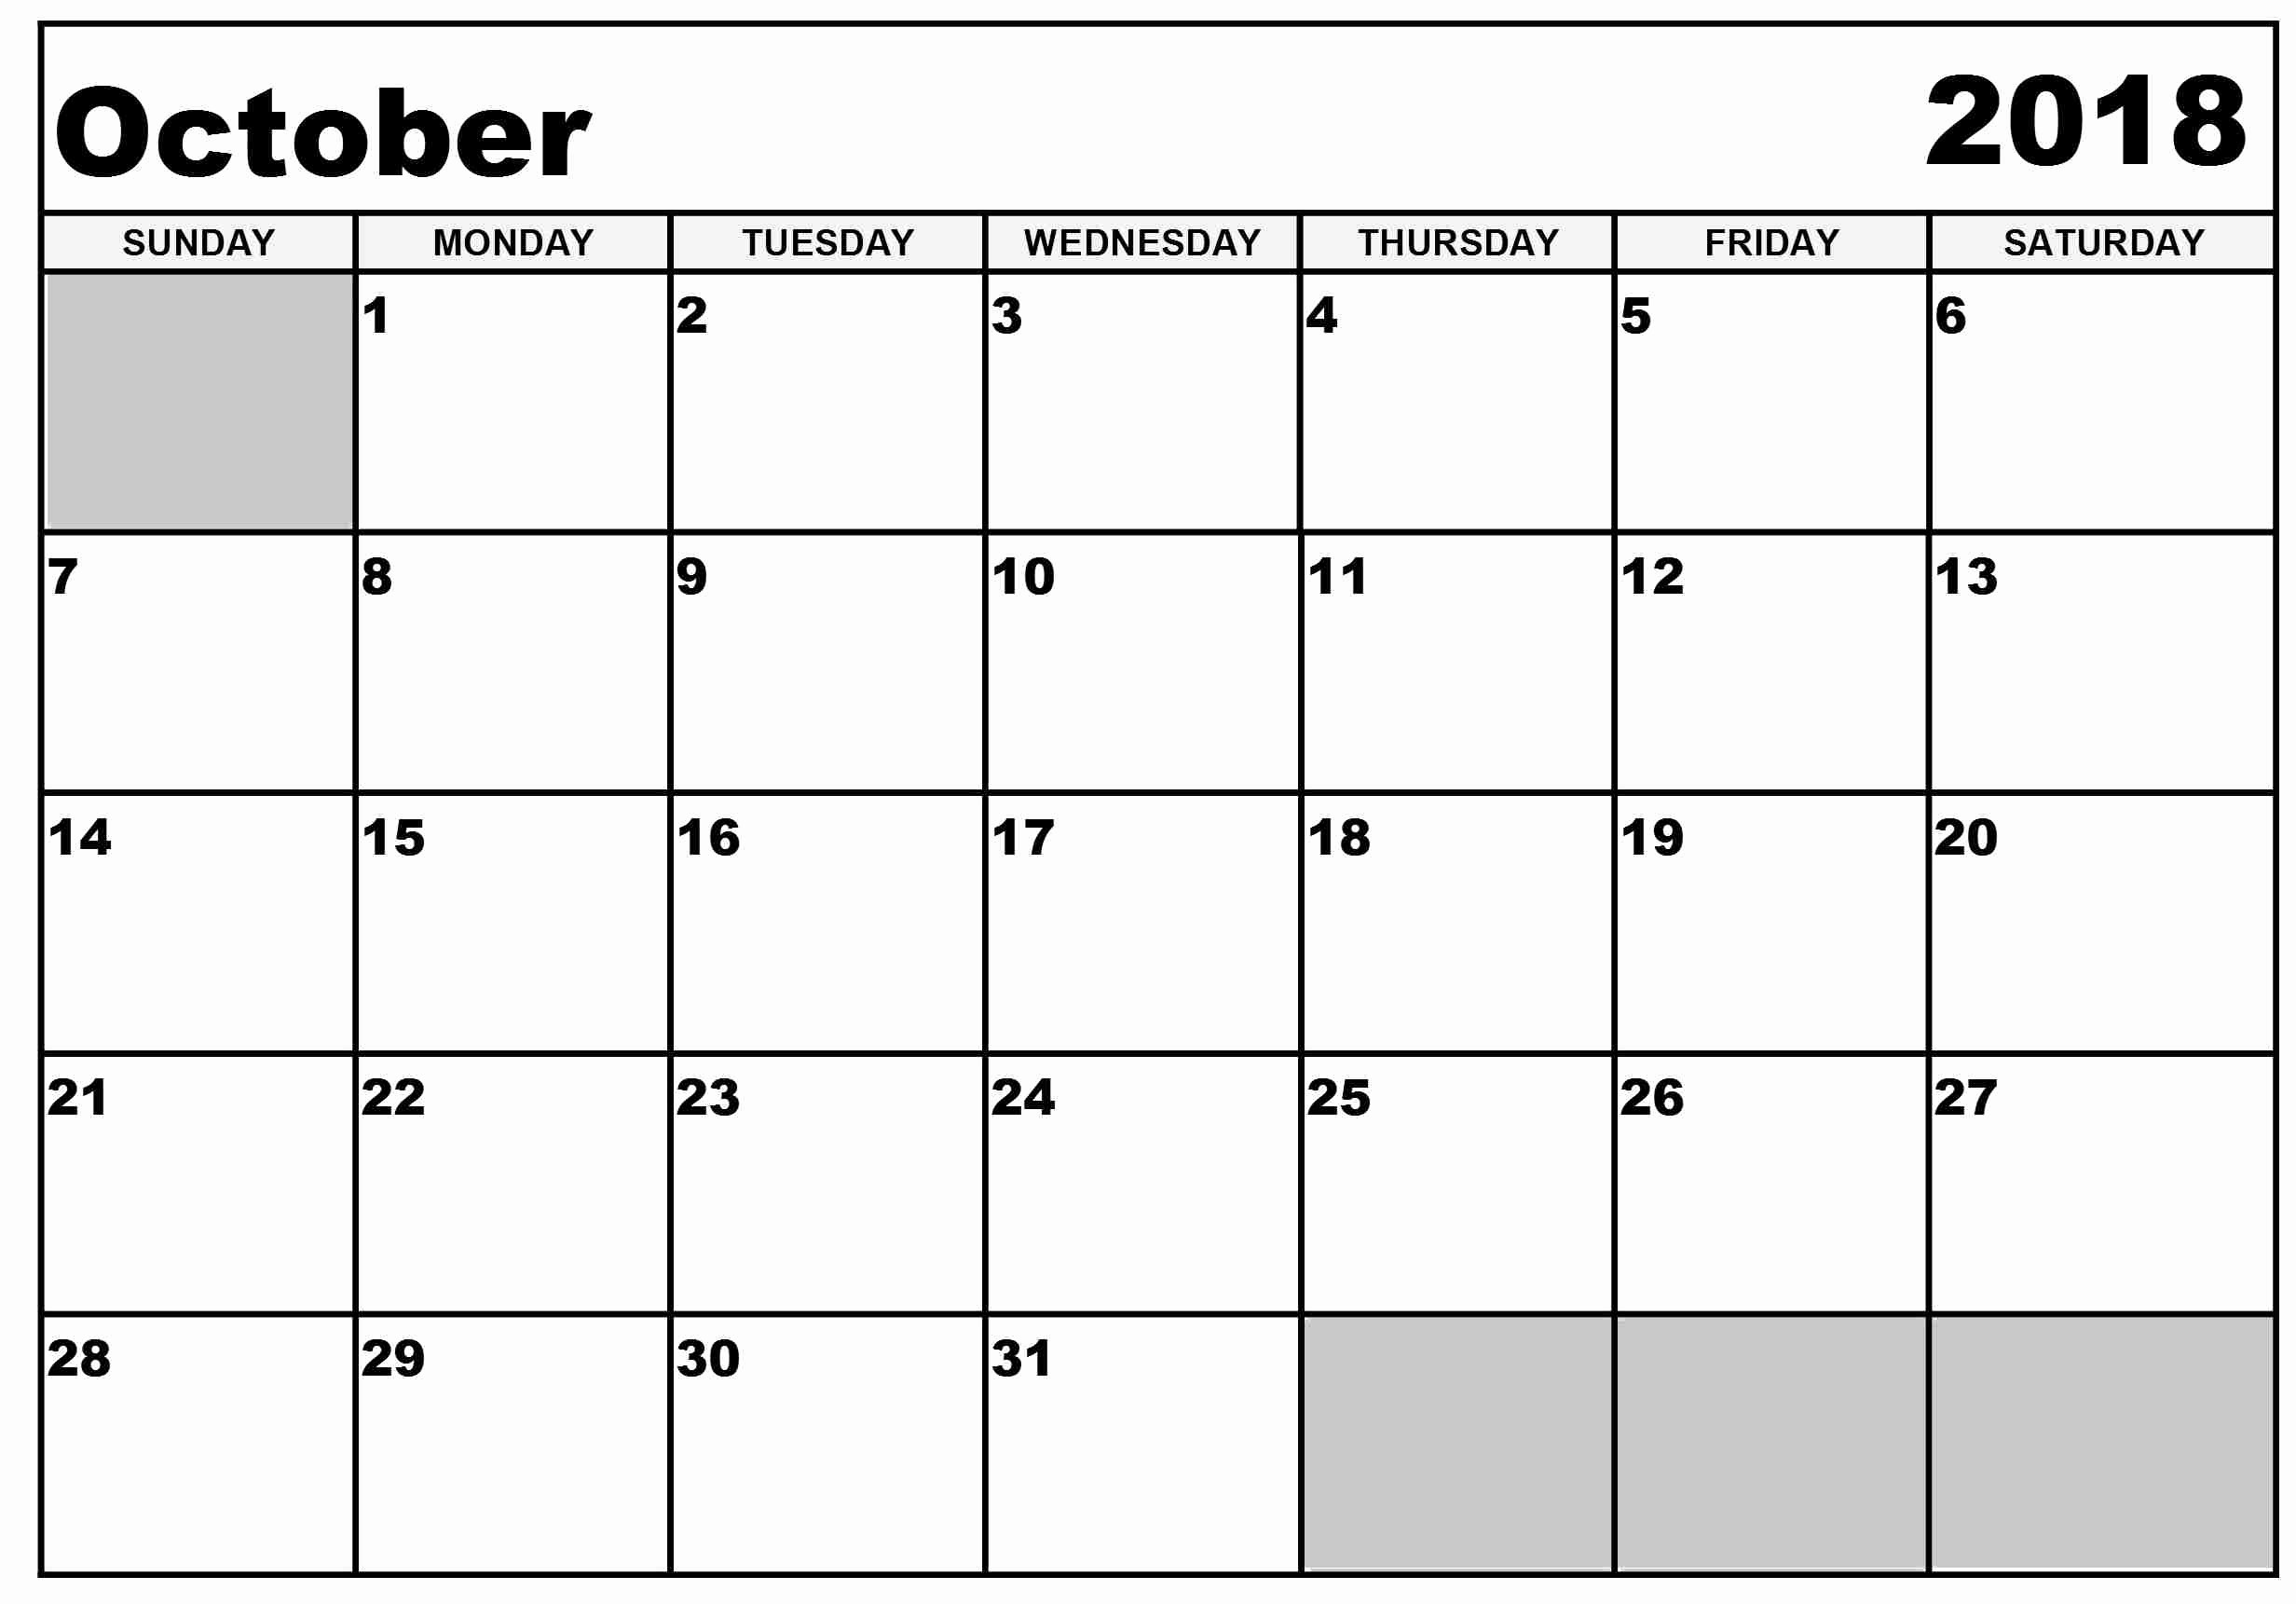 October 2018 Printable Calendar Word New Free Printable Calendar October 2018 Word – Free Printable